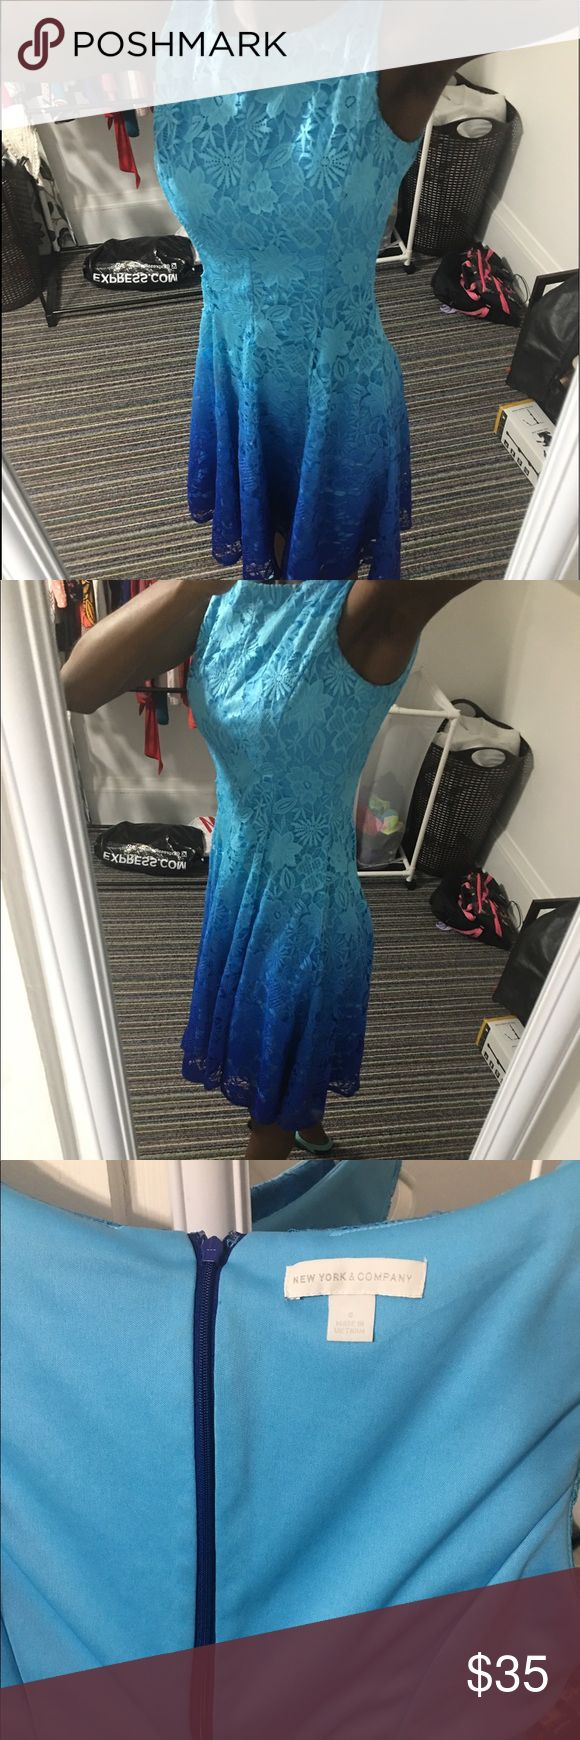 A midi length dress. This is one of my favorite dress. I wore this dress couple of time last year and the dress is still in an excellent condition. New York & Company Dresses Midi